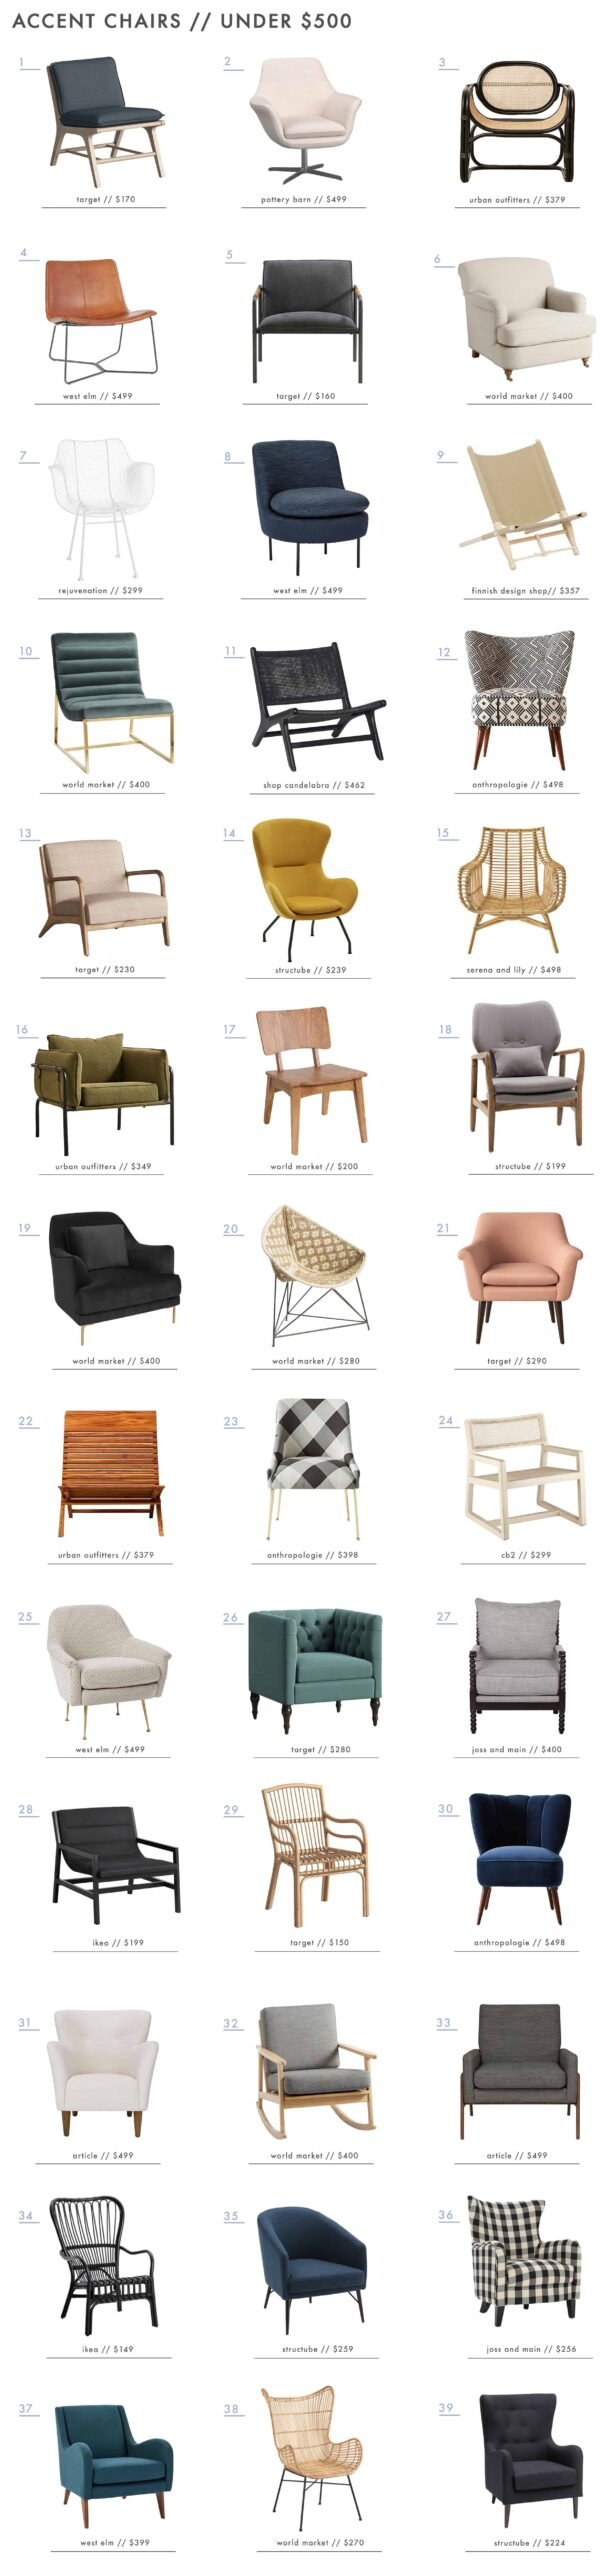 Emily Henderson Accent Chairs Under 500 Roundup